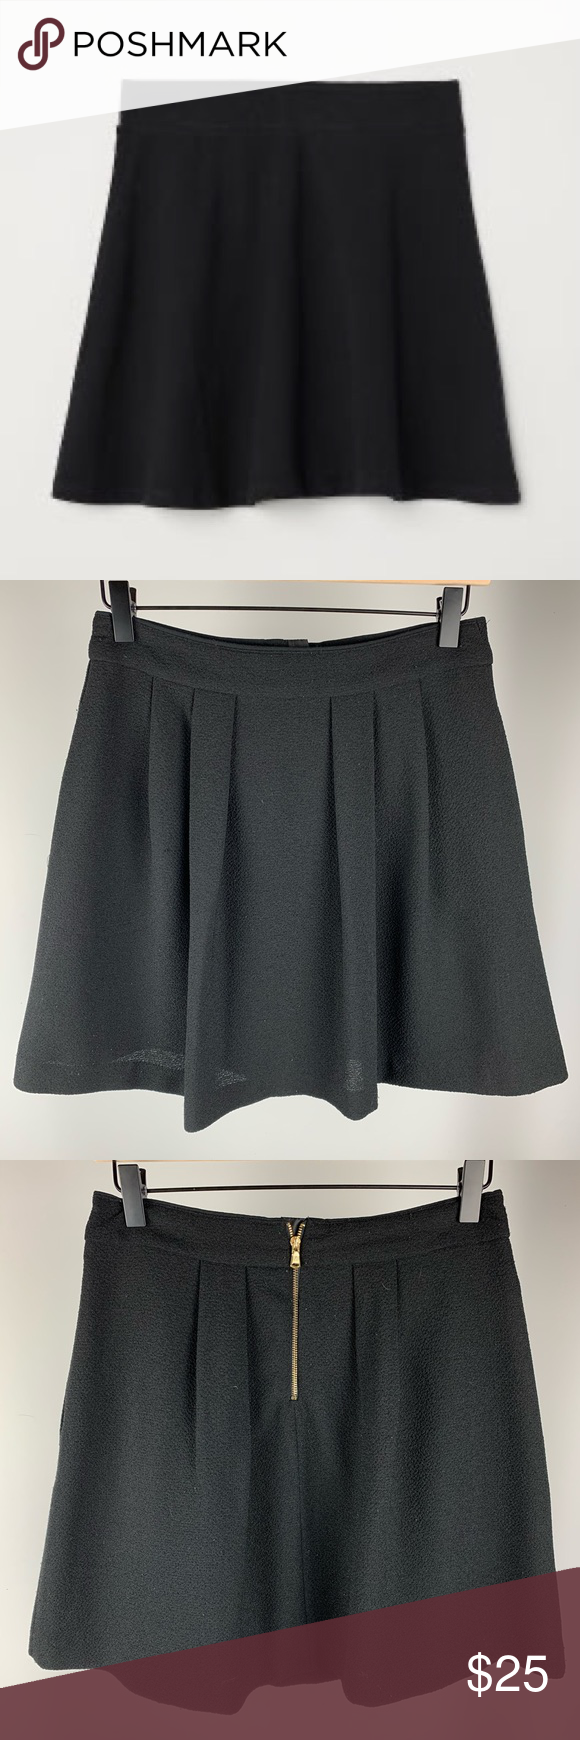 Zara Basic S Black Pleated Circle Skirt Size S In 2020 With Images Zara Basic Clothes Design Circle Skirt